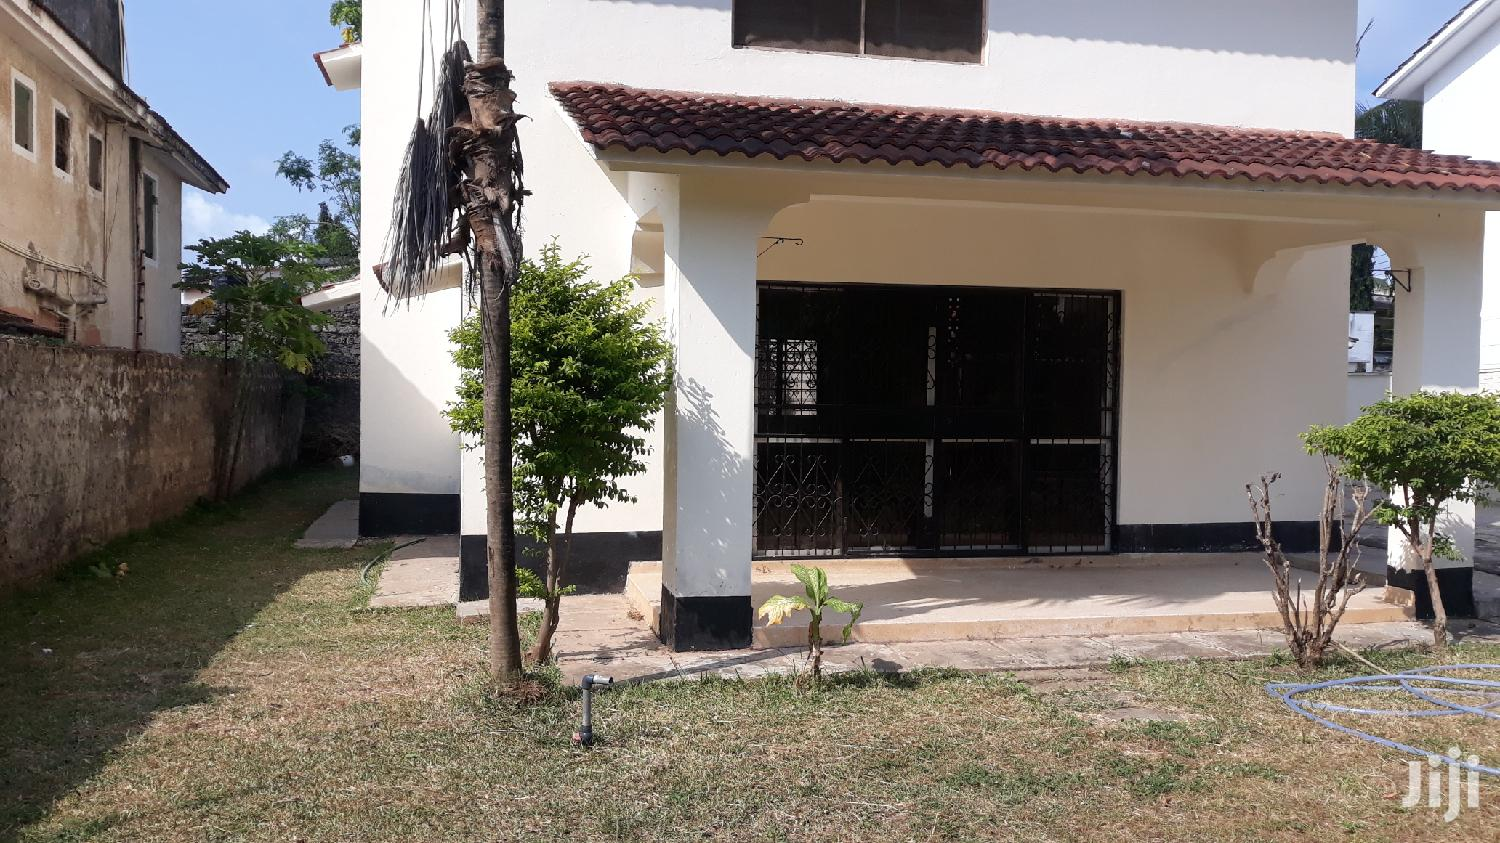 Nyali// Stunning 4 Bedroom Villa Own Compound With Sq | Houses & Apartments For Rent for sale in Nyali, Mombasa, Kenya